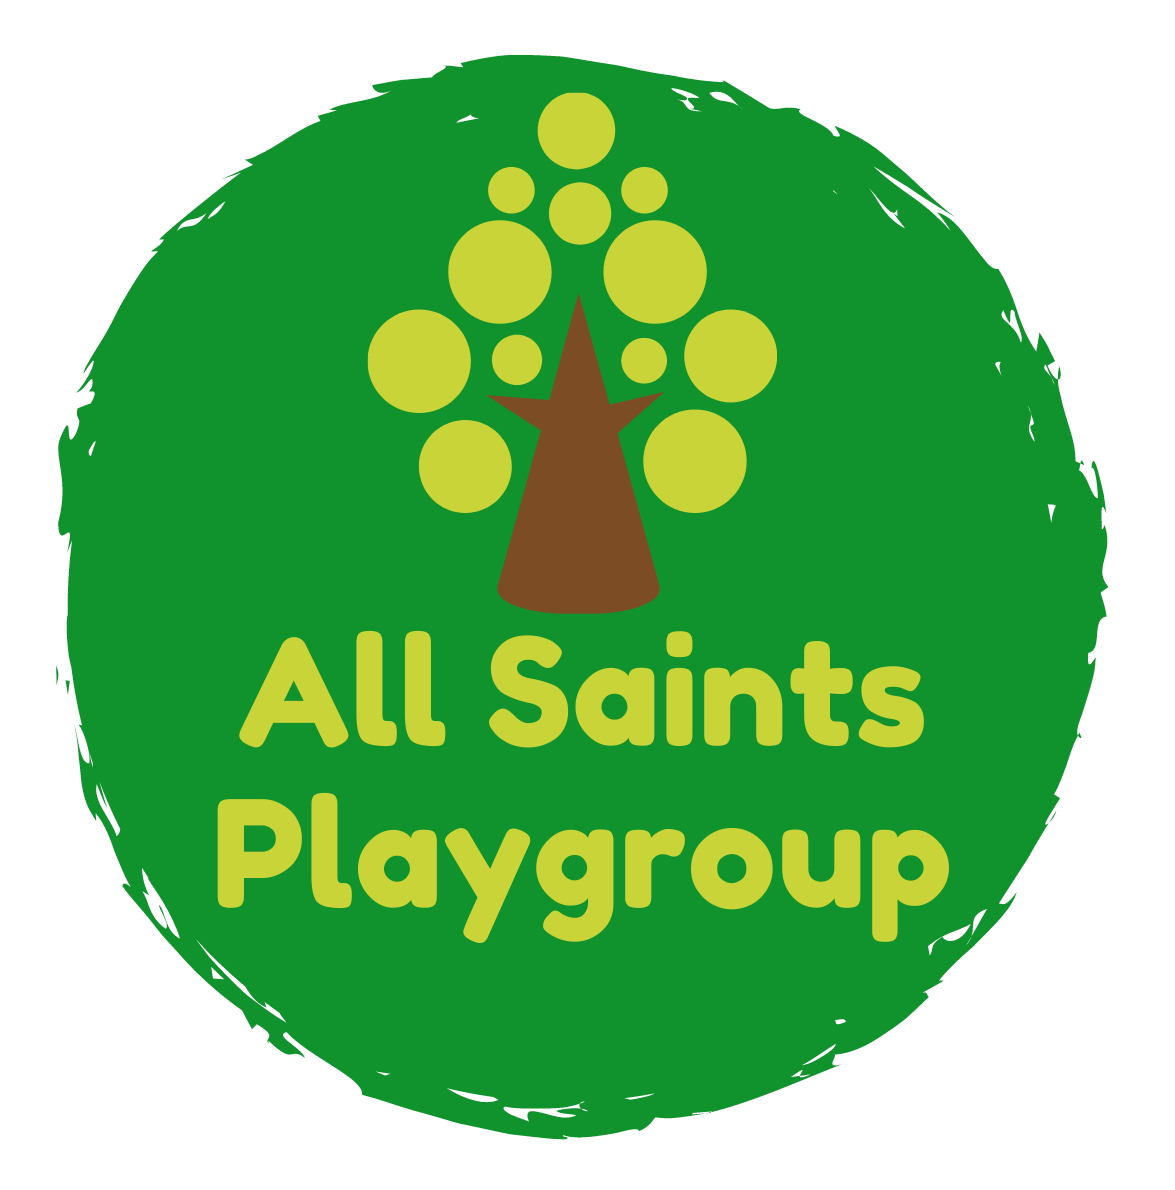 All Saints Playgroup